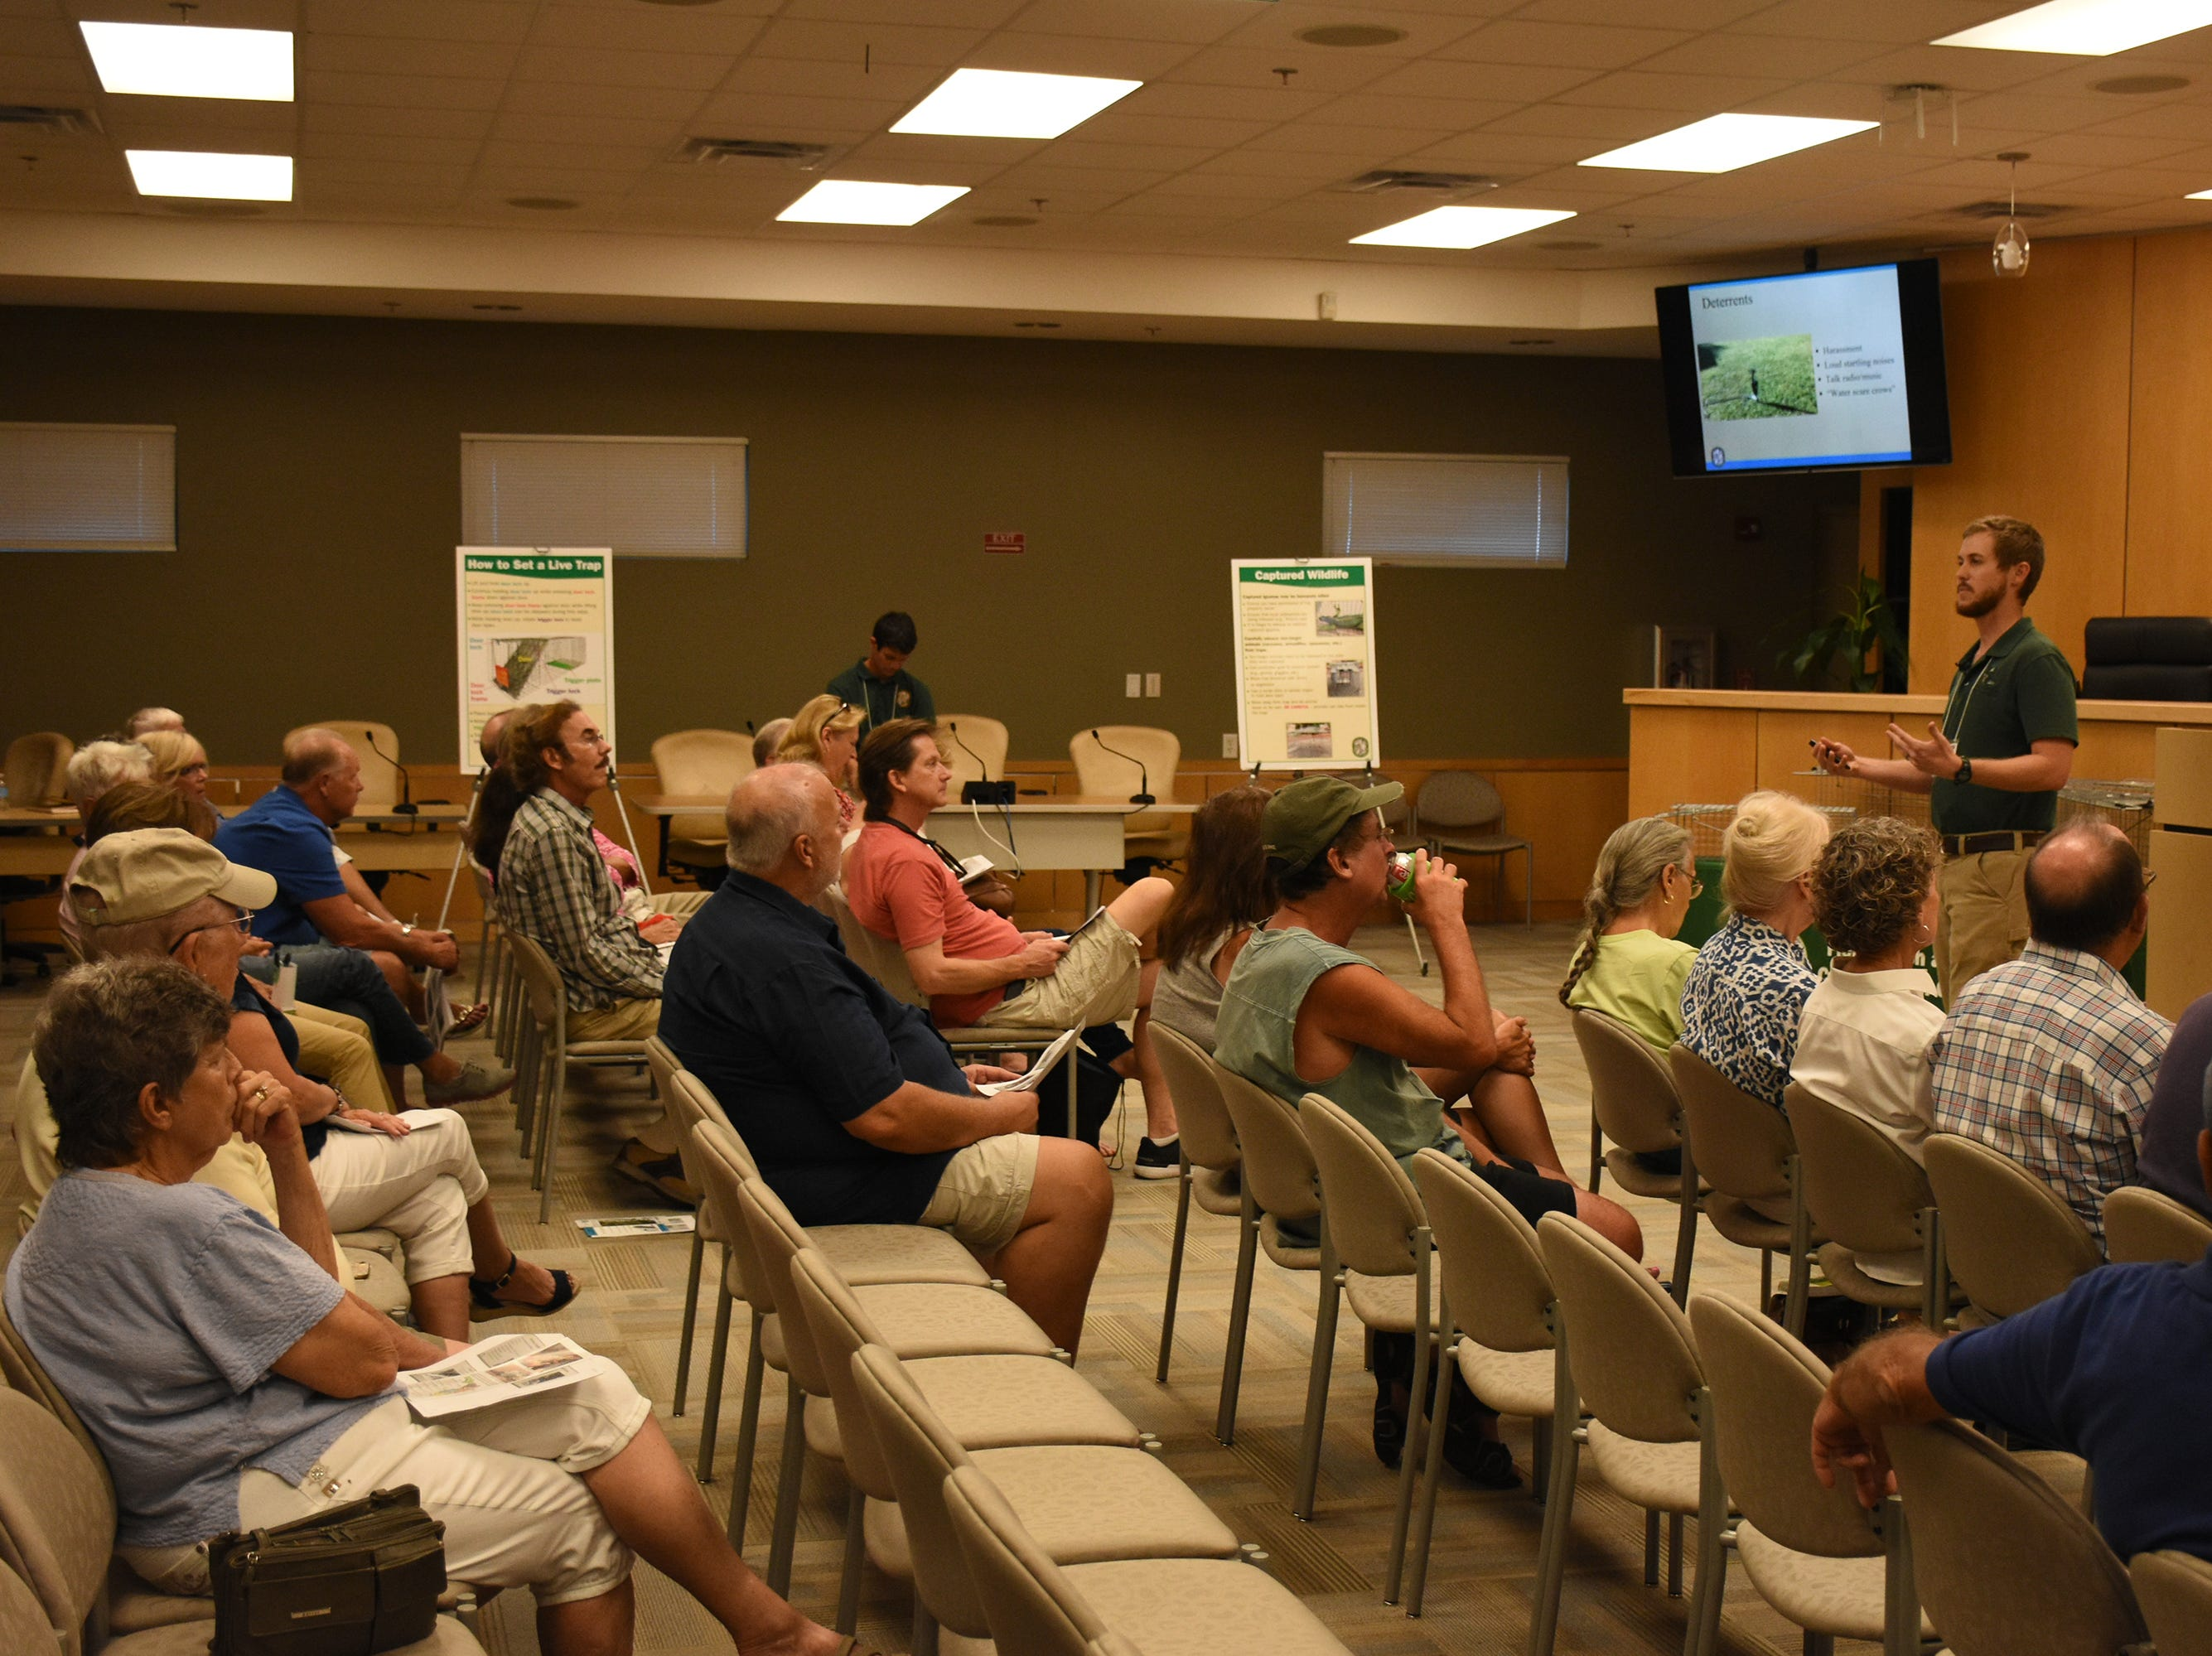 FWC biologist Dan Quinn speaks ro about 40 islanders on dealing with iguanas. The City of Marco Island hosted a presentation on invasive iguanas conducted by the Florida Fish and Wildlife Conservation Commission on Wednesday evening in the Biles Community Room.